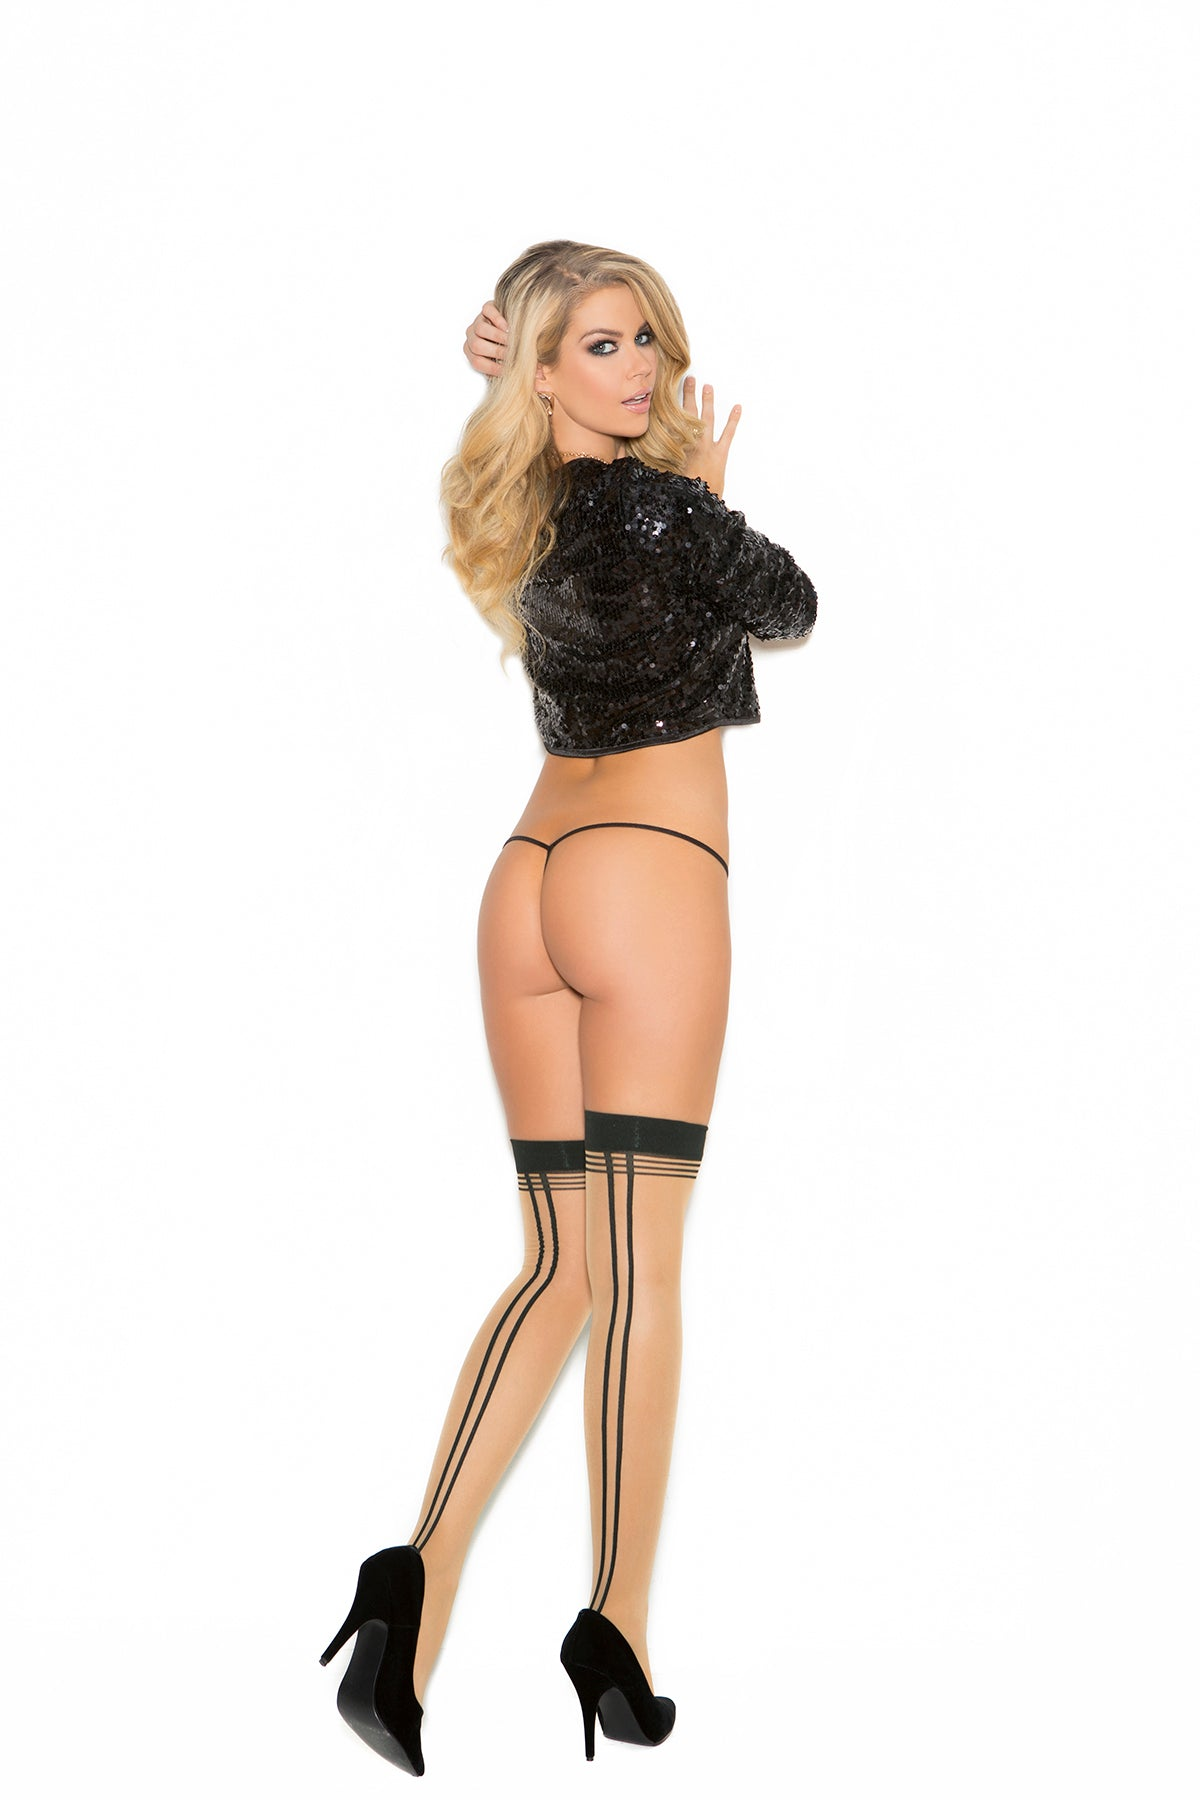 SHEER THIGH HI W/DOUBLE BACK S